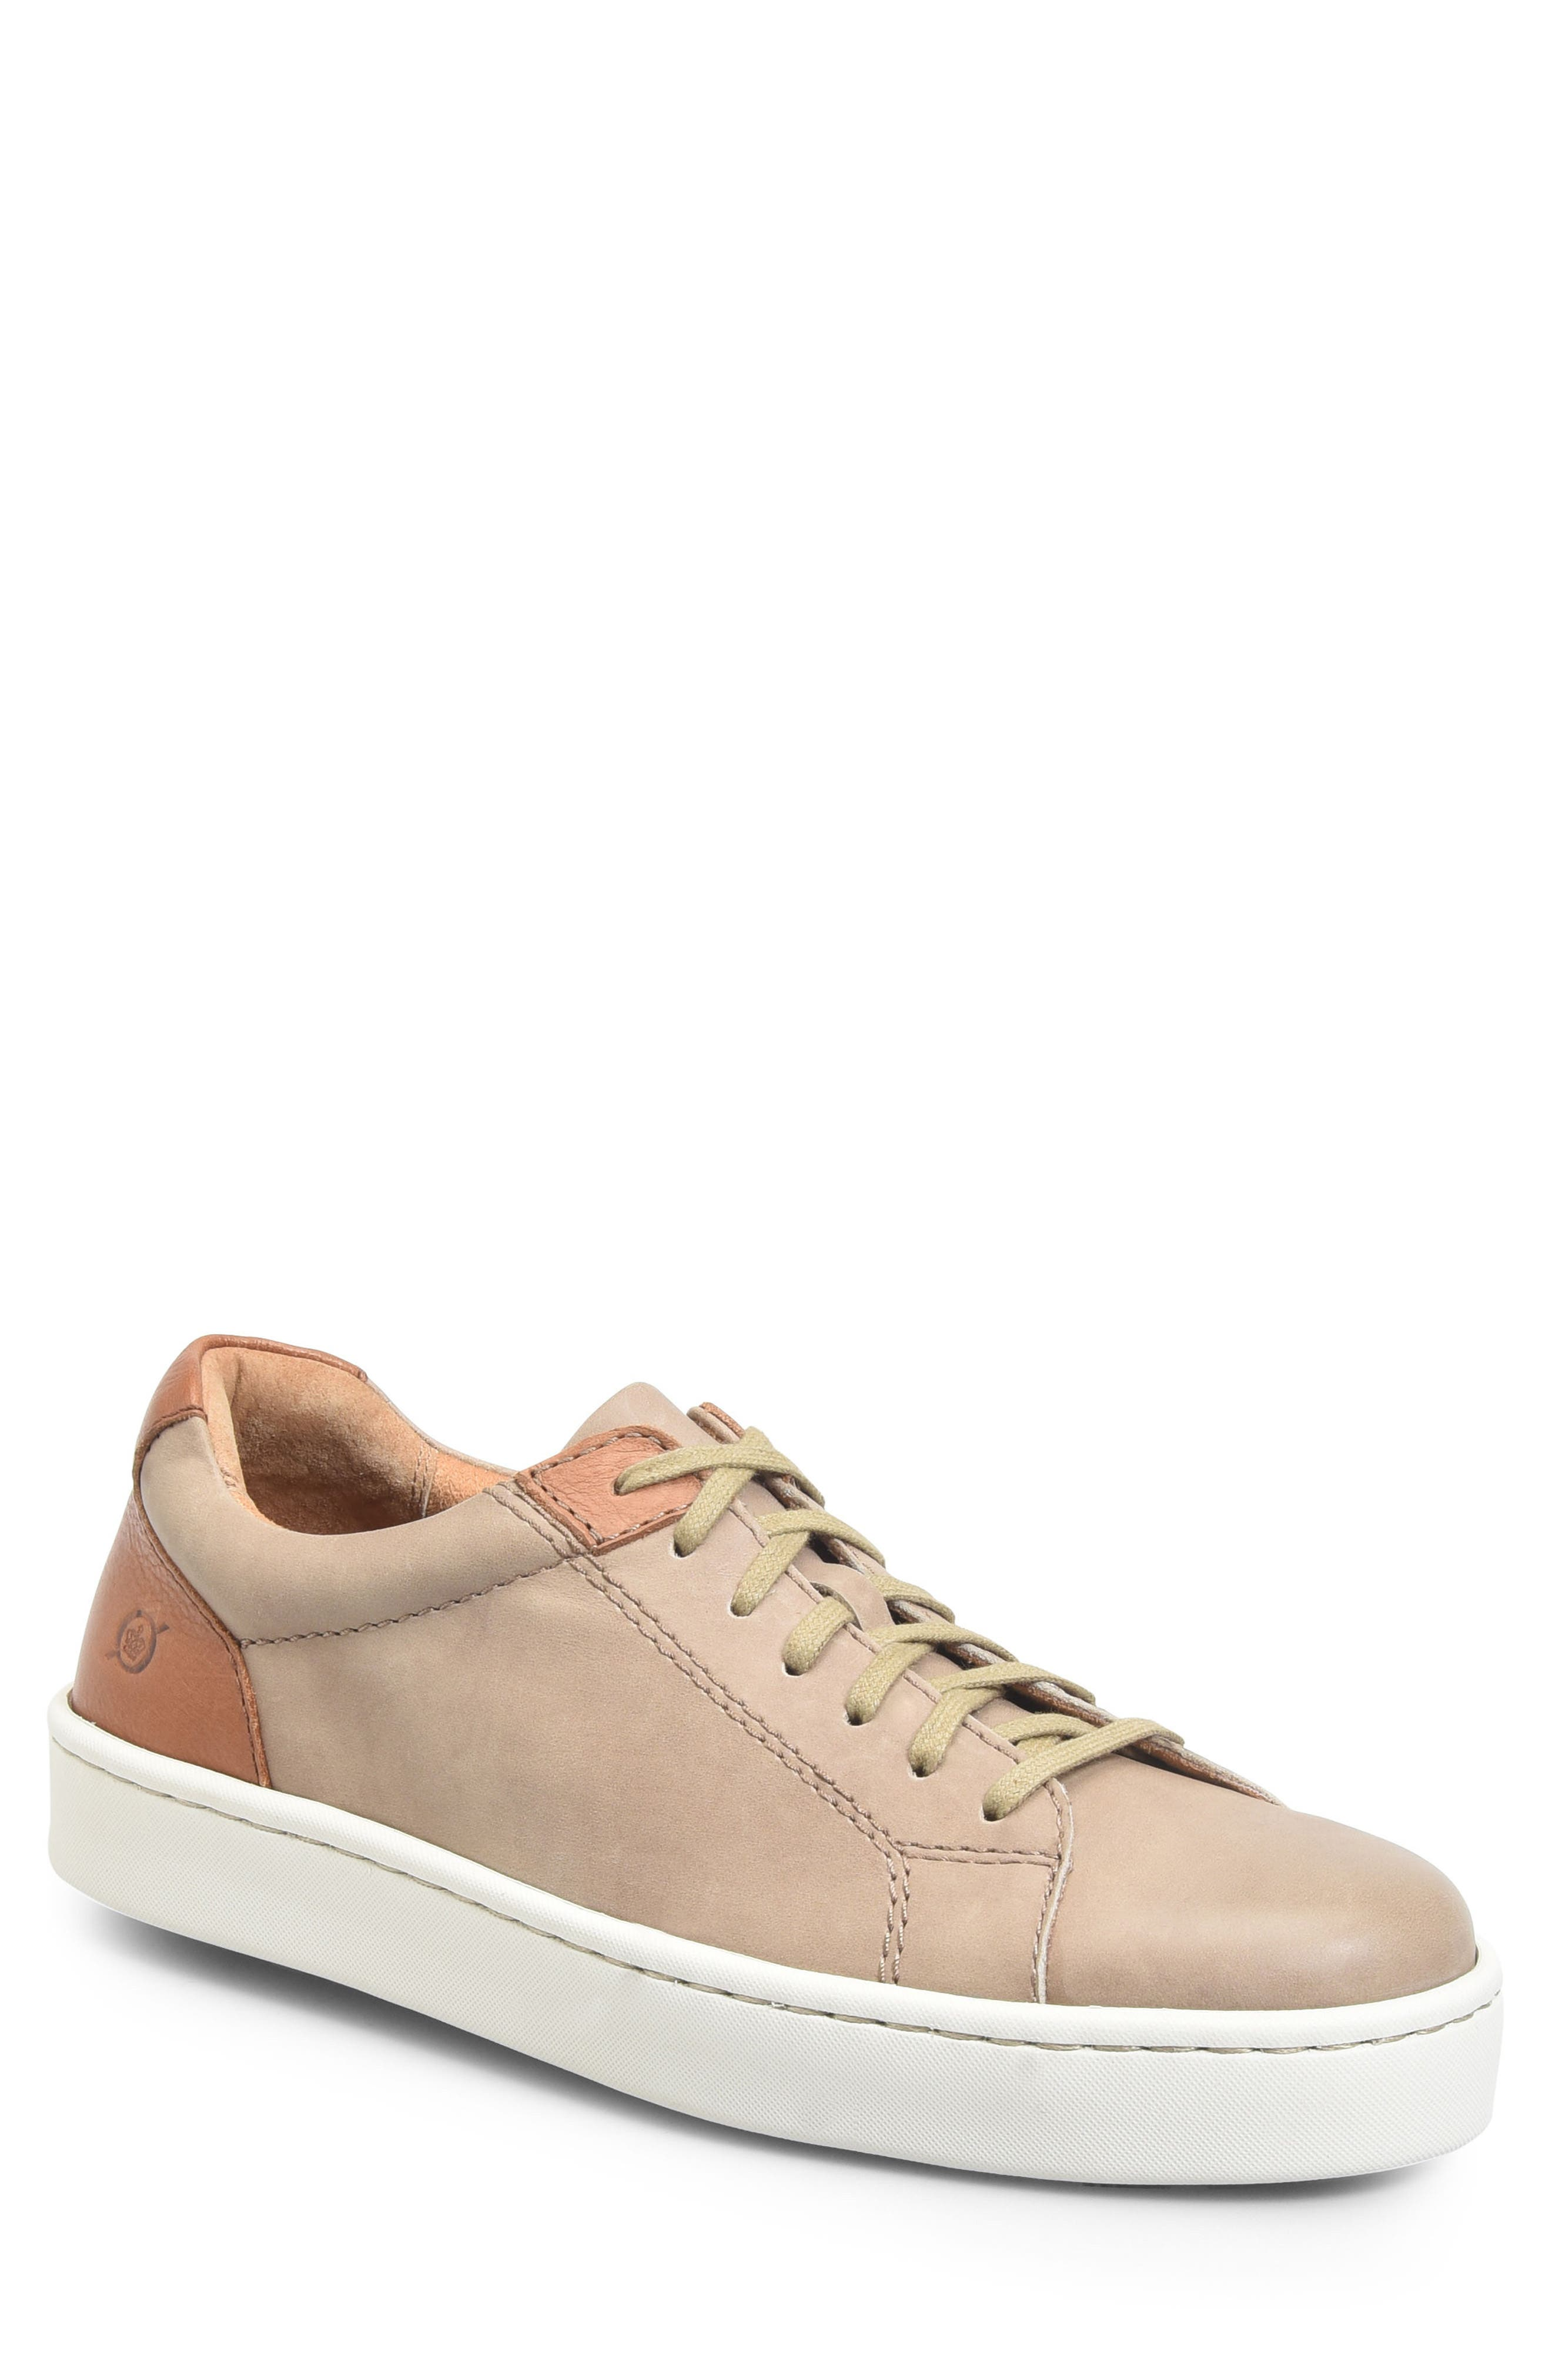 Jib Sneaker,                             Main thumbnail 1, color,                             Taupe/ Brown Leather